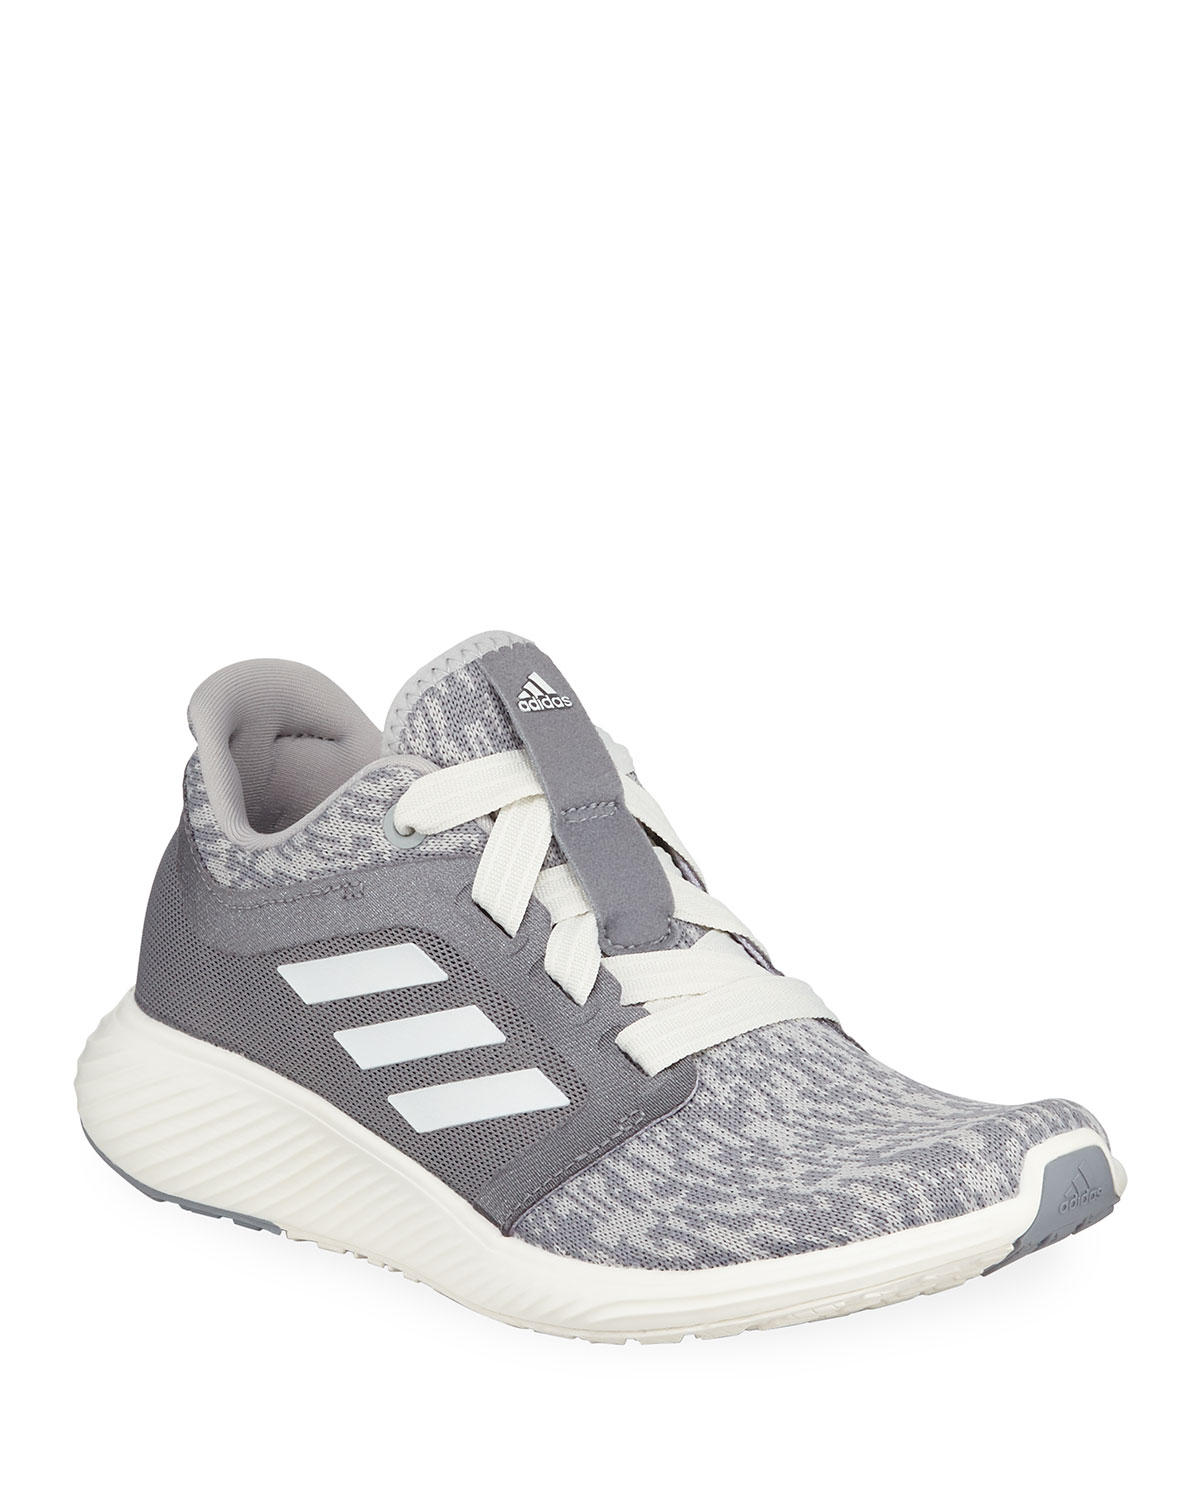 promo code 5278b dae19 AdidasEdge Lux 3 Knit Sneakers